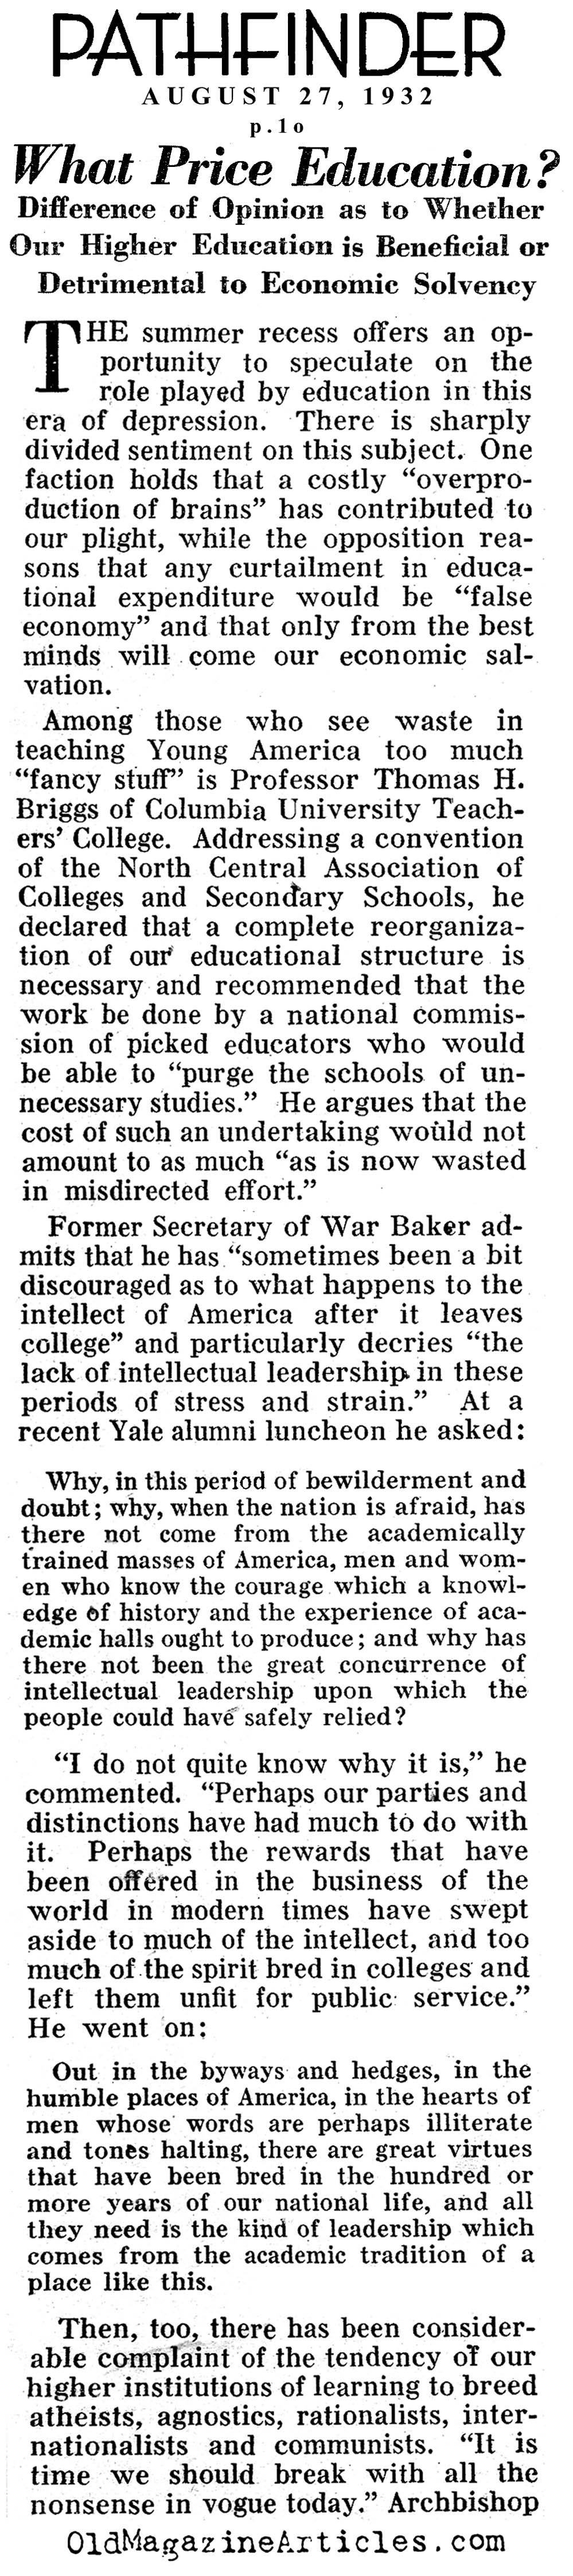 Are College Degrees Needed In Such A Bad Economy? (Pathfinder Magazine, 1932)